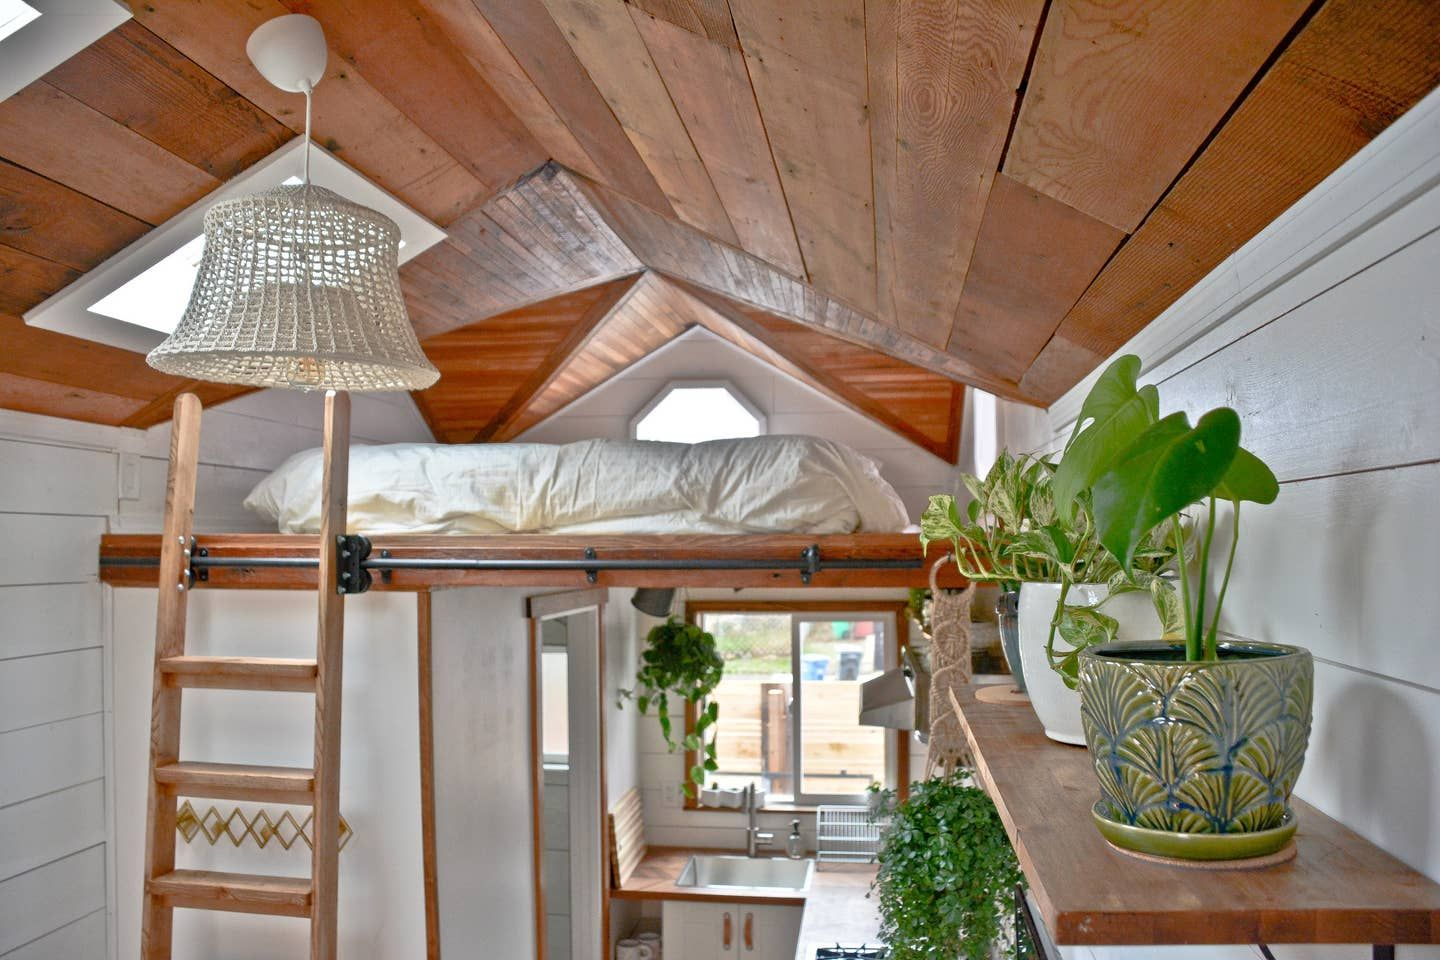 20 Tiny Houses in Oregon You Can Rent on Airbnb in 2020